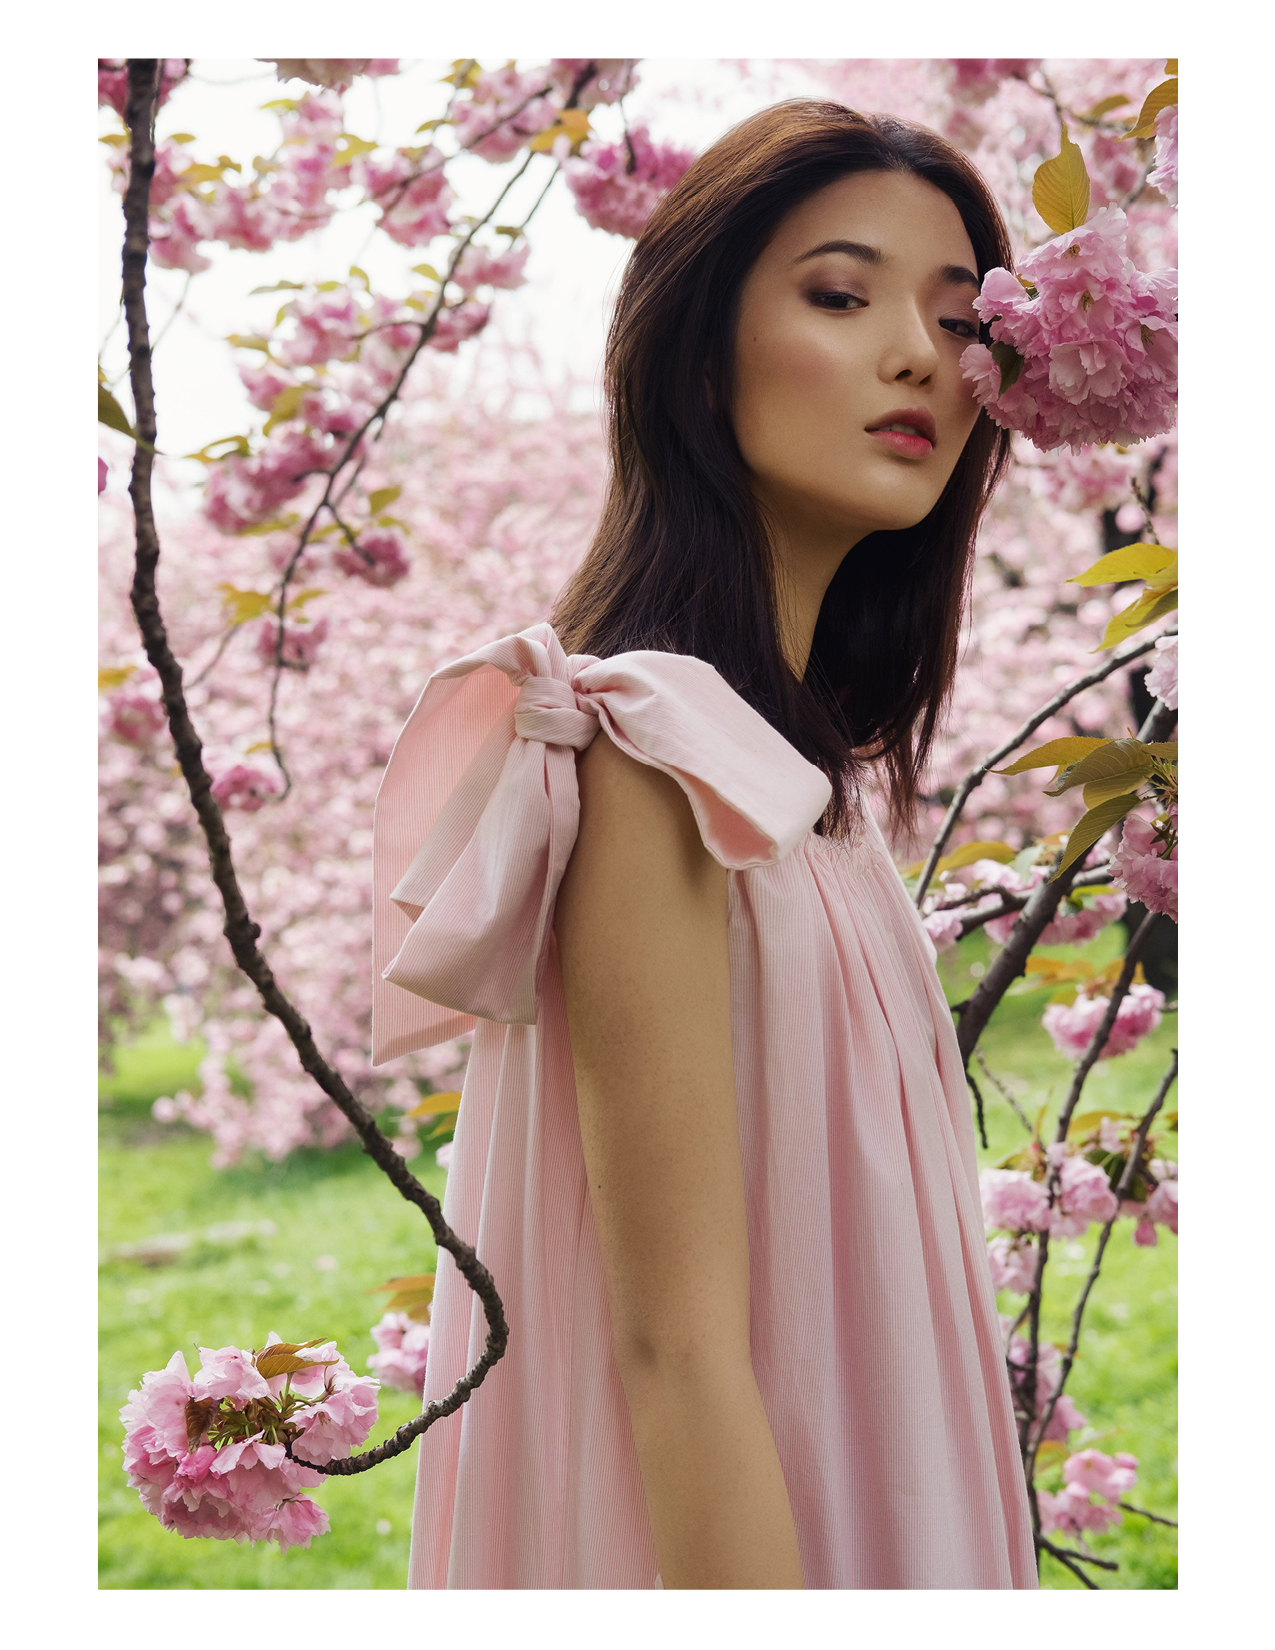 ROSE & IVY Journal Beauty Editorial Ever Bloom